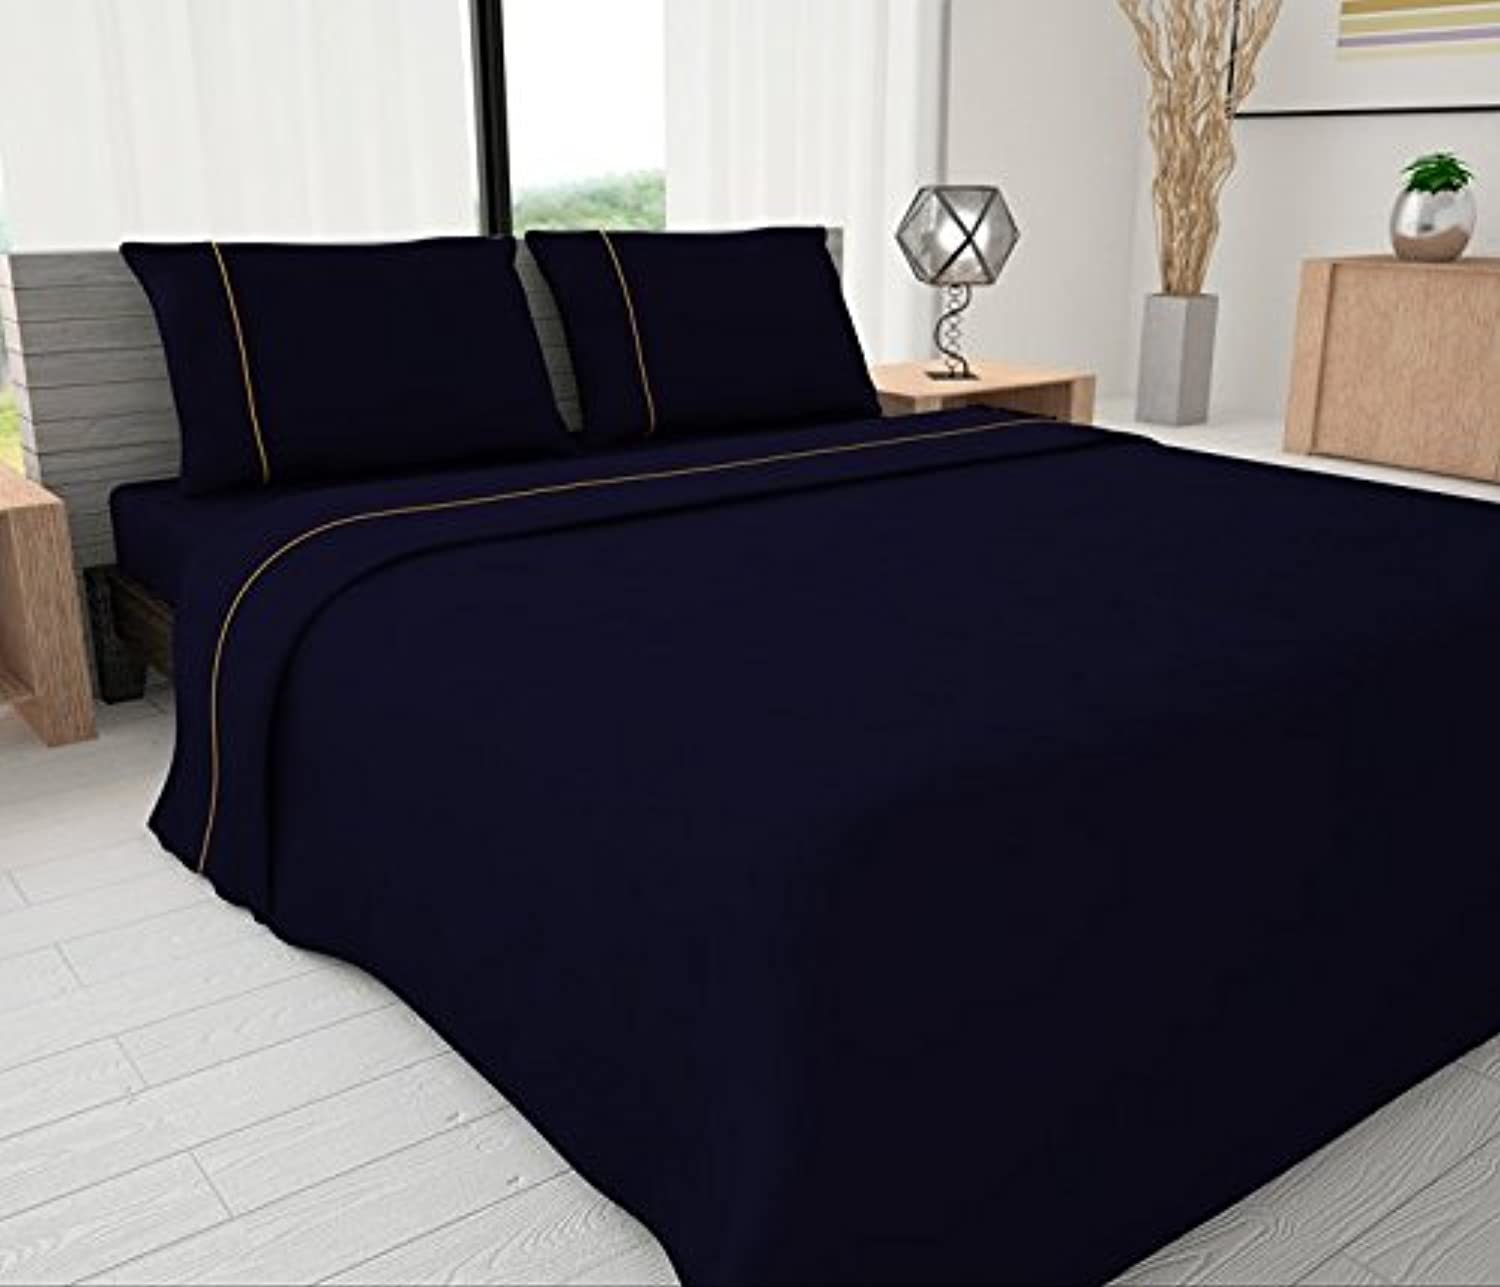 Livingston Home Novelty Bedding 144 Thread Count Egyptian Cotton Blend Solid Sheet with Piping Accents, Full, Oxford bluee